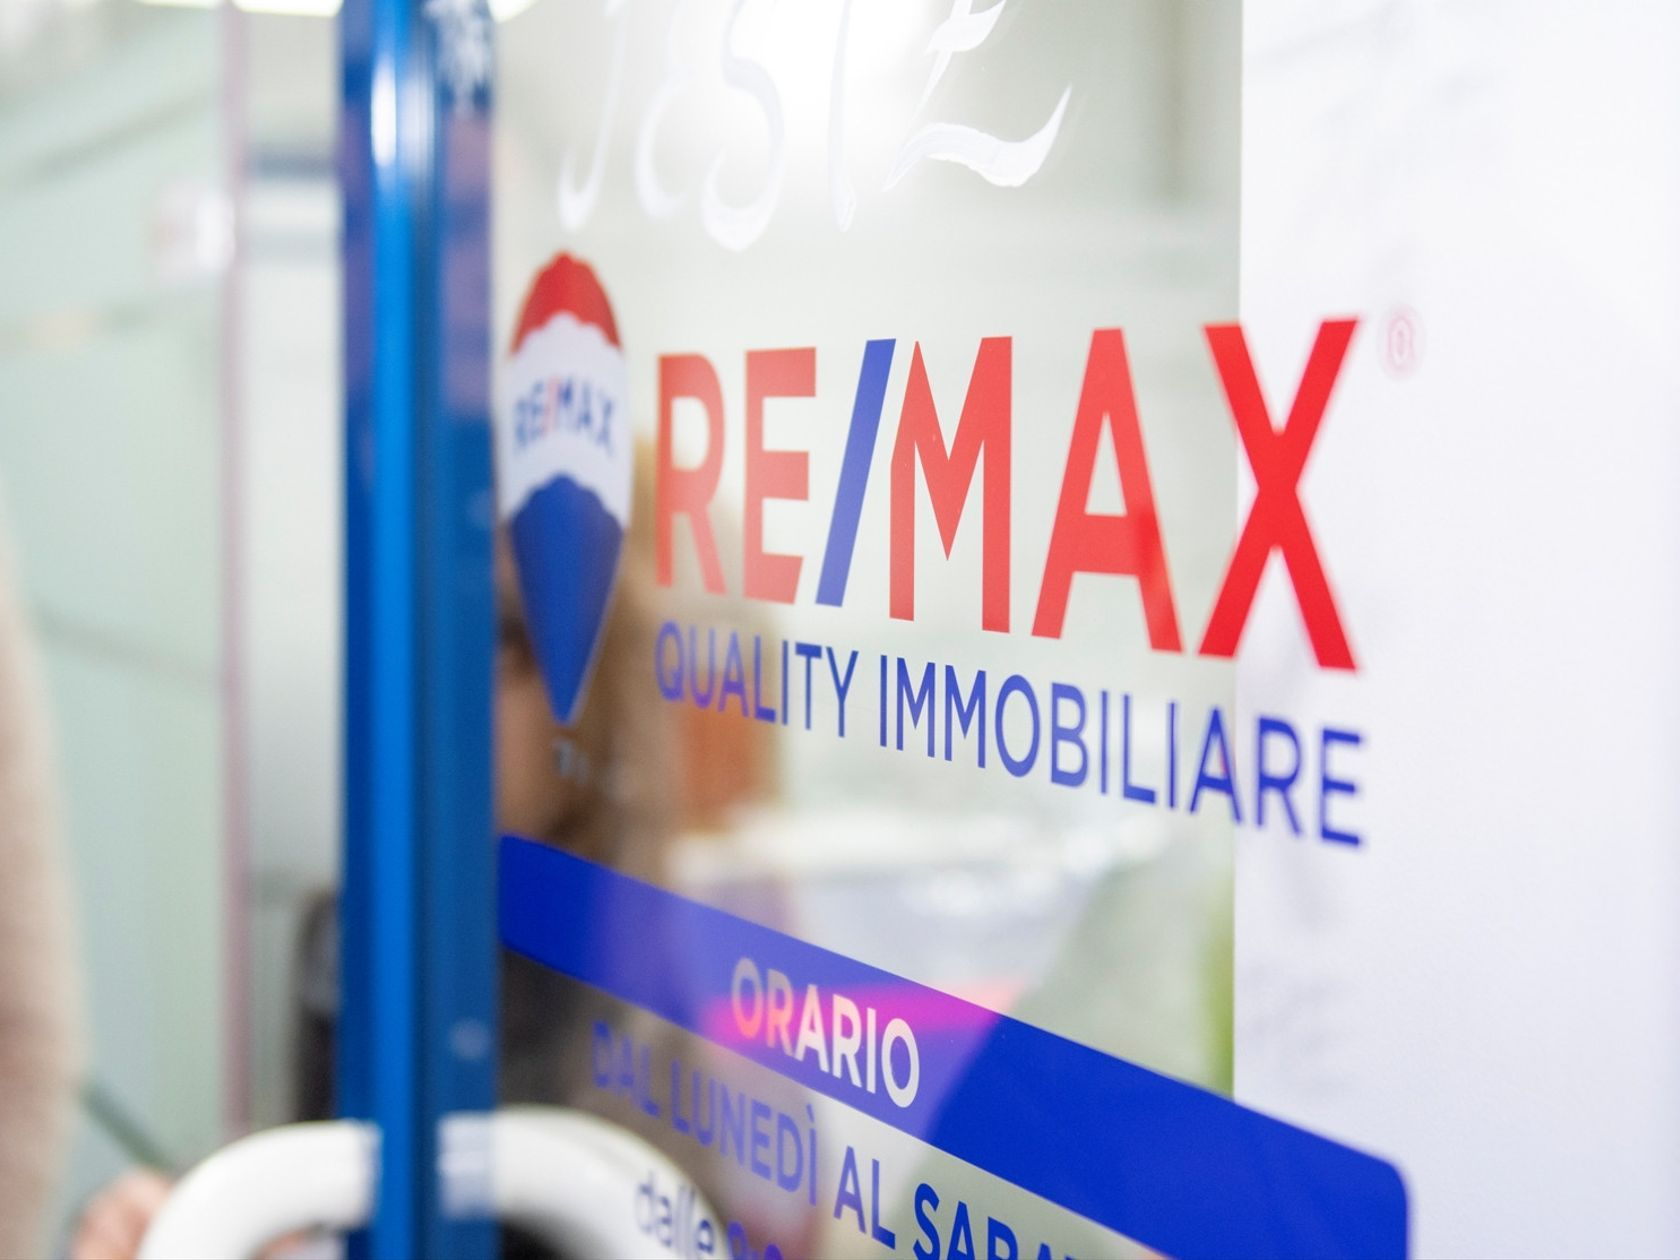 RE/MAX Quality Immobiliare Vieste - Foto 4